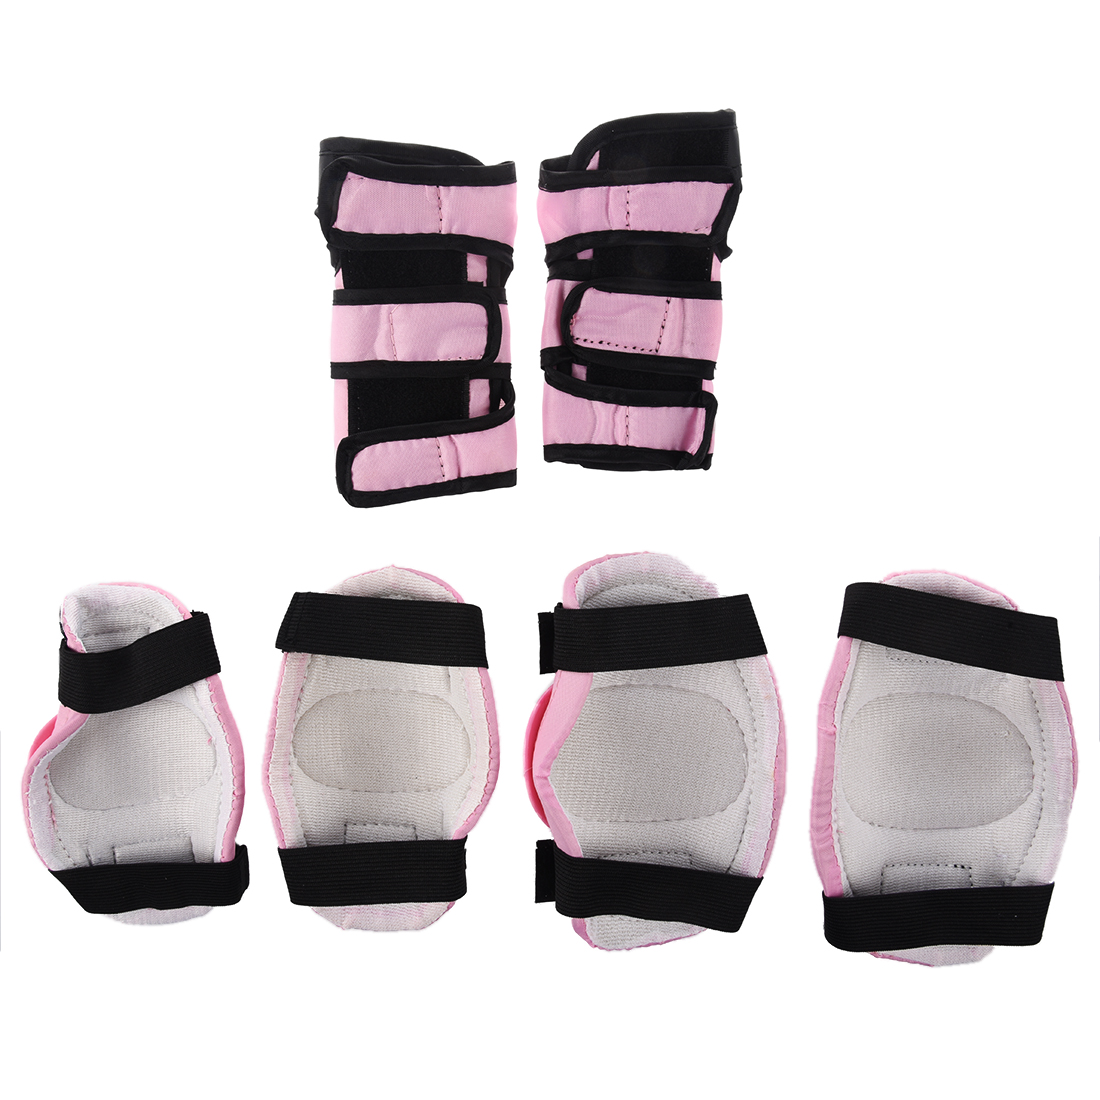 New Sale Boys Girls Childs Children Skate Cycle Knee Set Elbow Wrist Safety Pads Kids